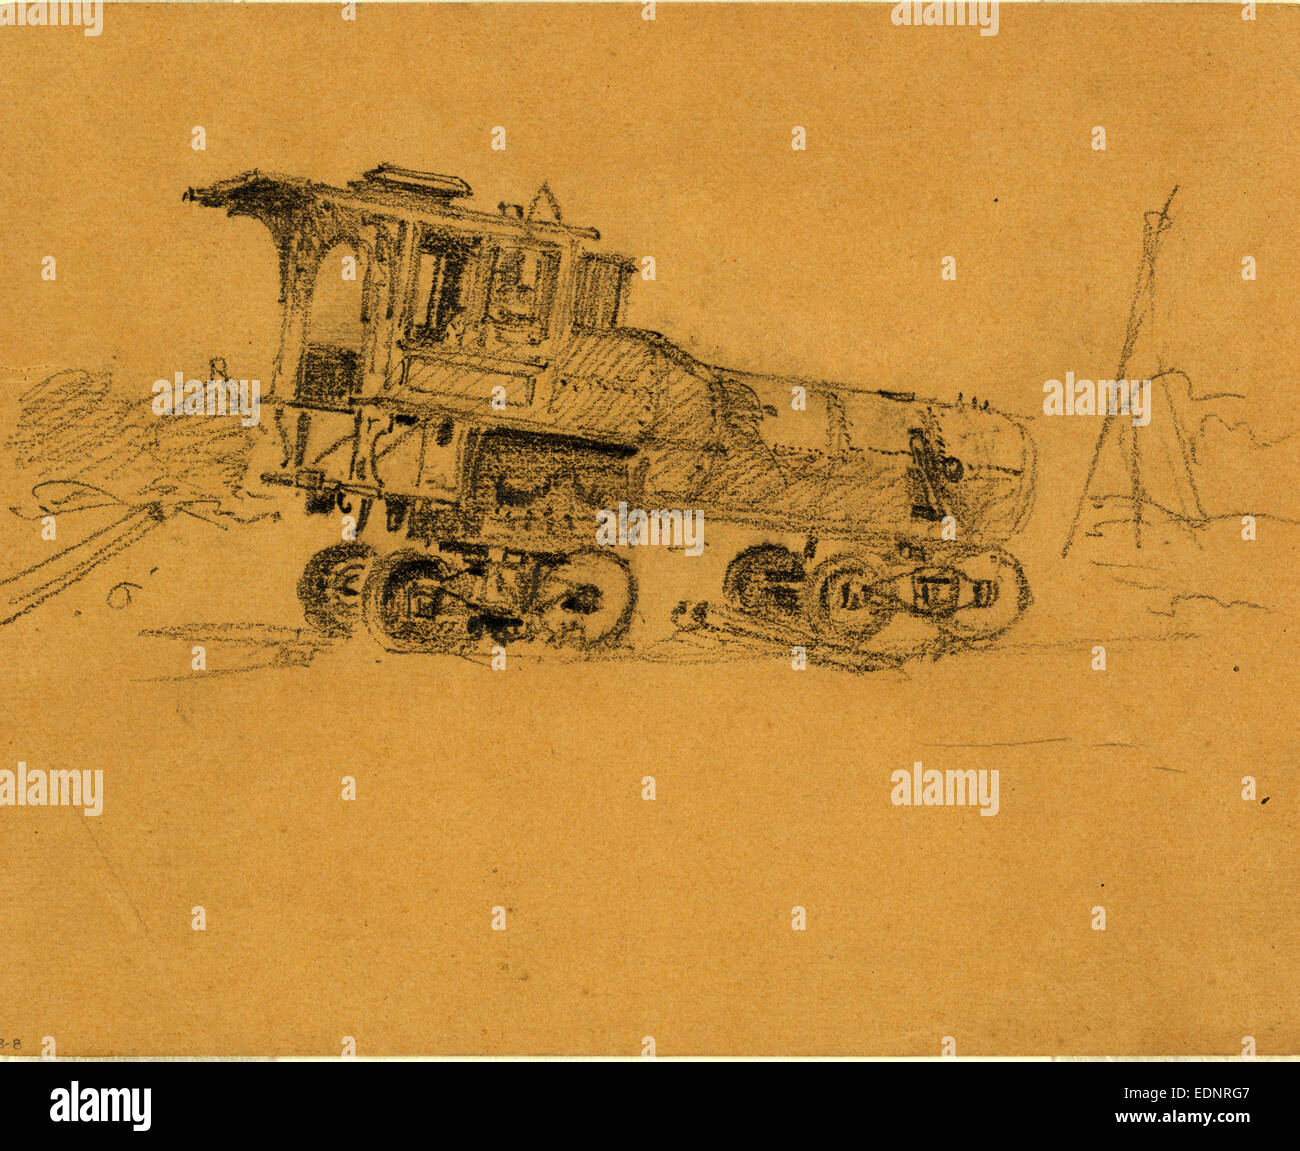 Locomotive, 1860-1865, drawing, 1862-1865, by Alfred R Waud, 1828-1891, an american artist famous for his American Stock Photo